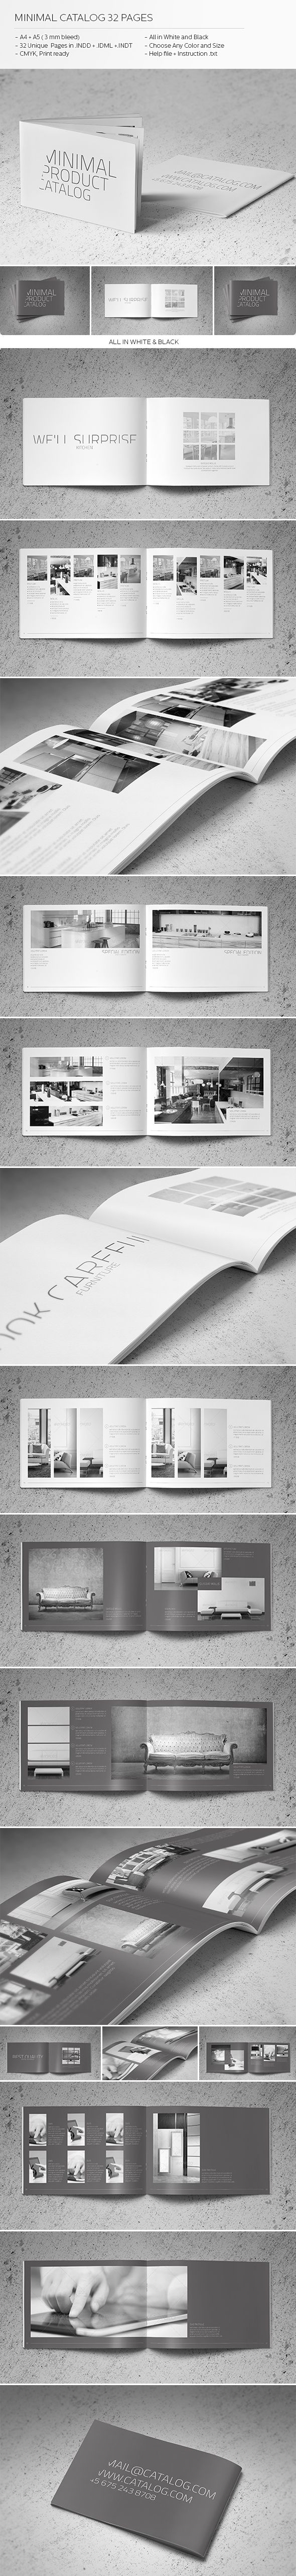 Minimal Catalog Layout Design by Realstar layout design brochure